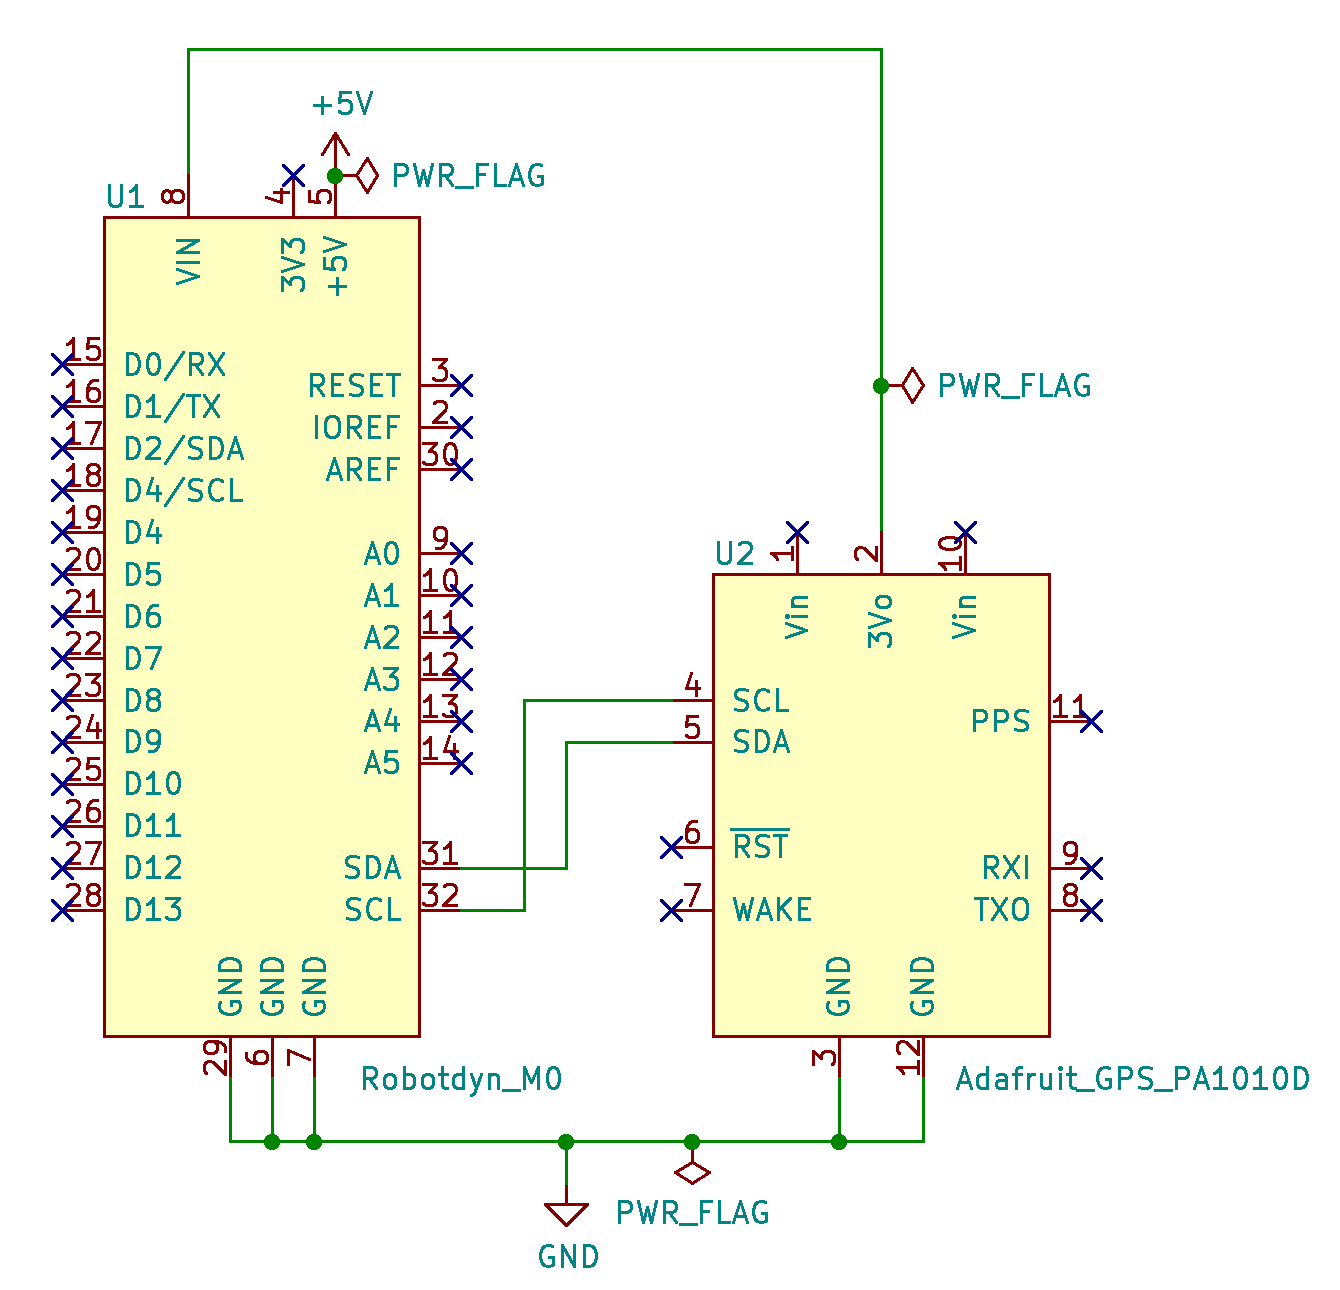 GPS parsing with PA1010D and M0 with I2C schematic